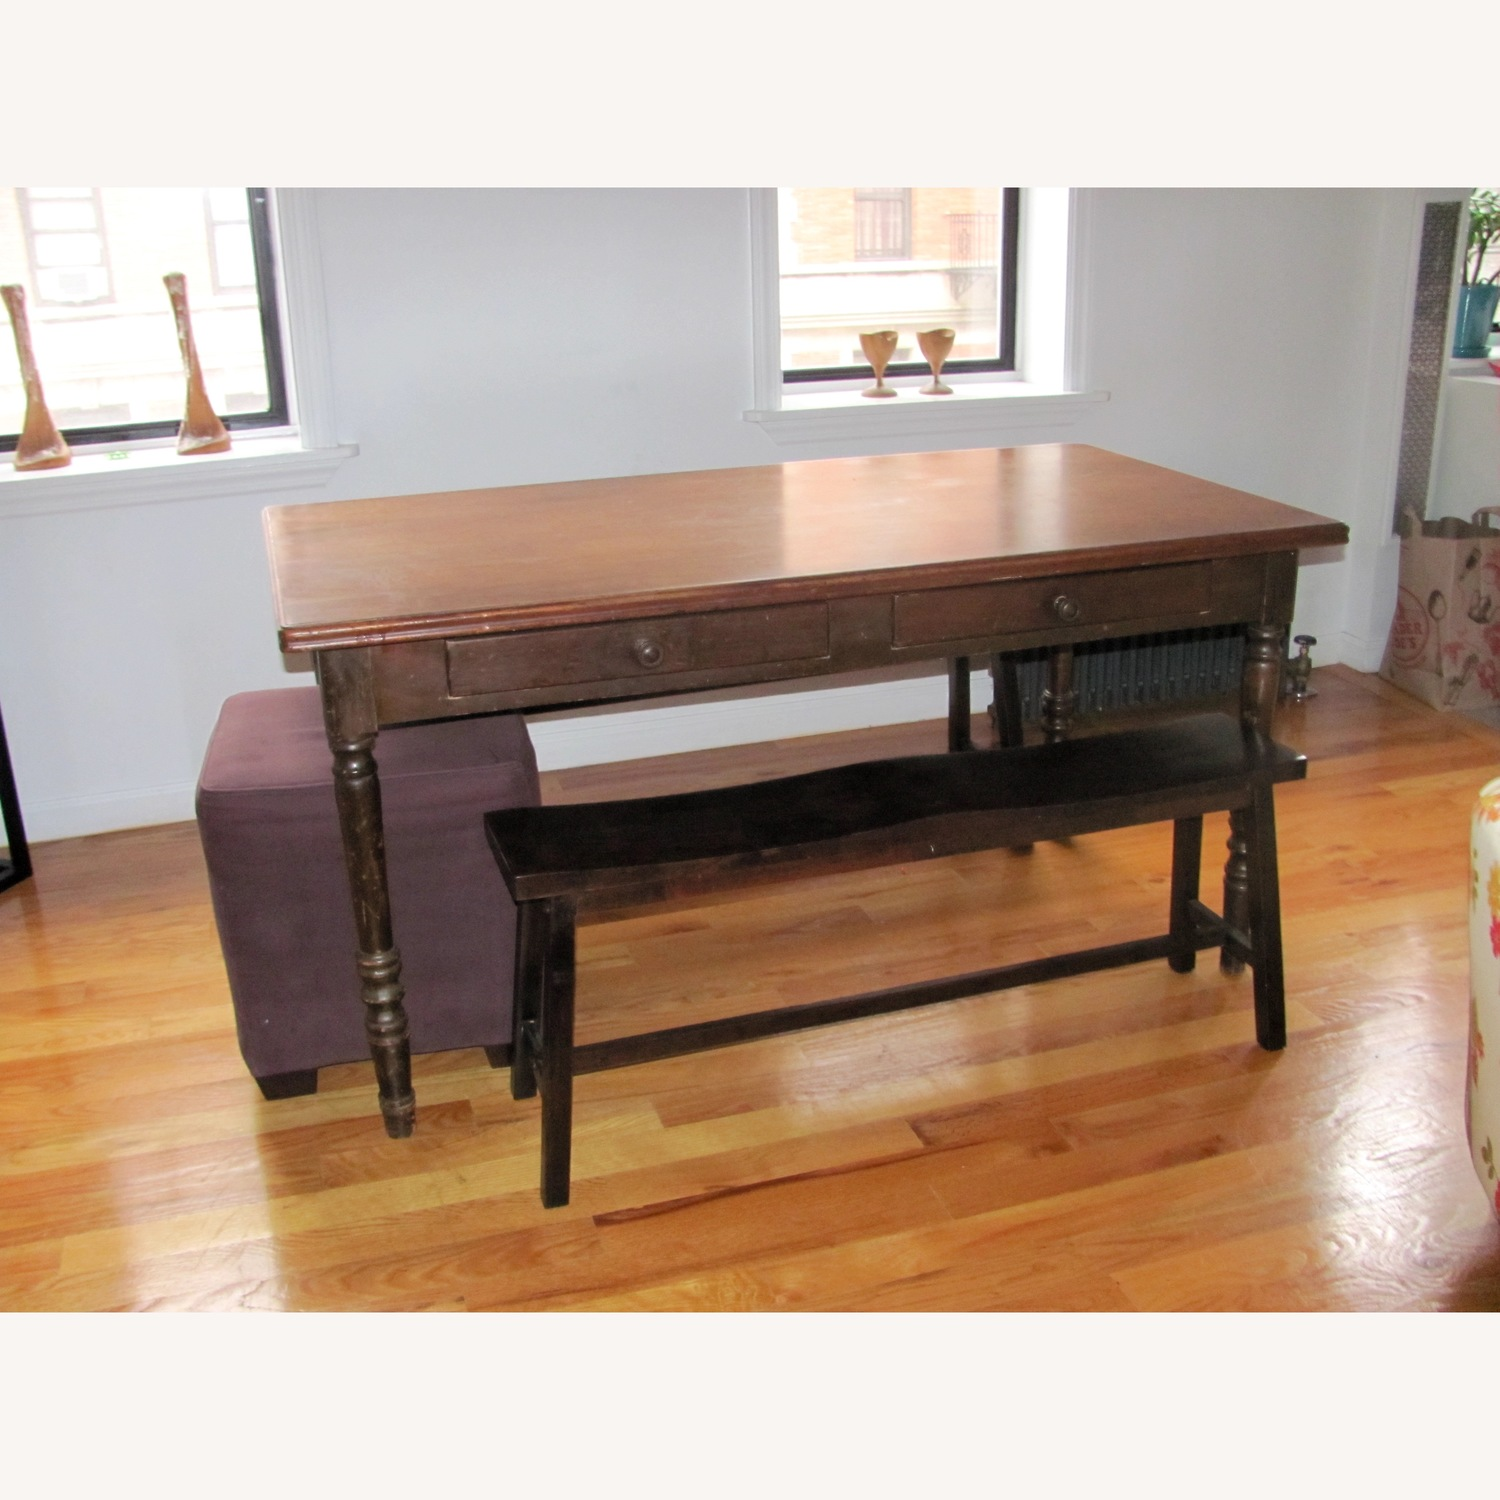 Vintage Wood Dining Table w/ 2 Benches - image-1